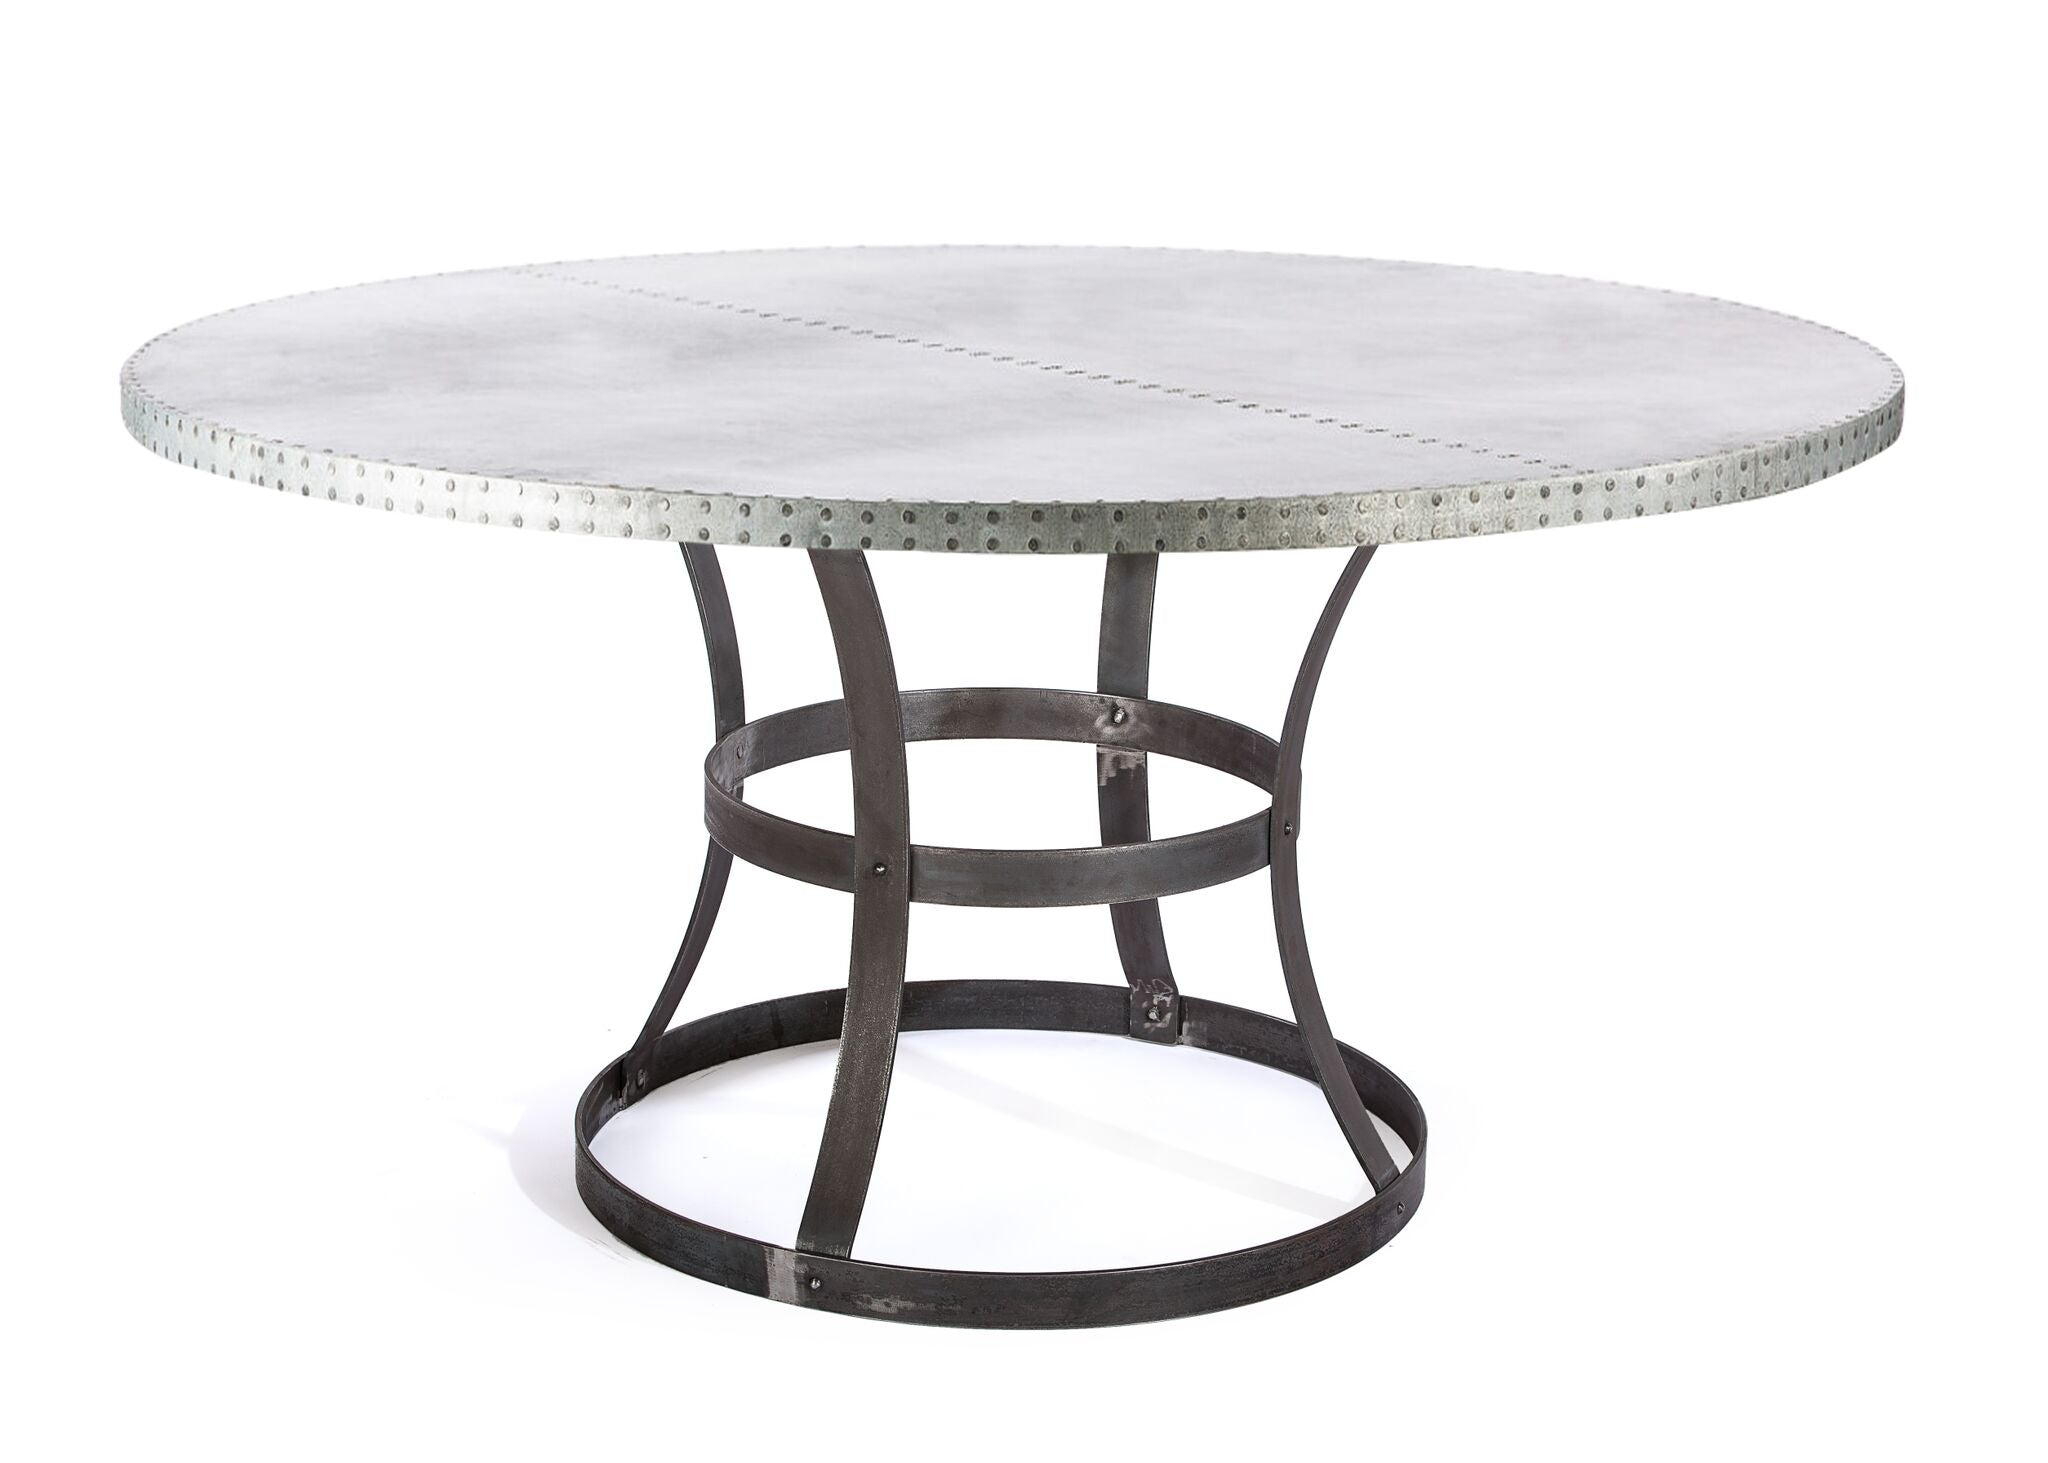 "Zinc Round Tables | Madera Table | CLASSIC | Natural Ash | CUSTOM SIZE D 42 H 29 | 1.5"" Standard